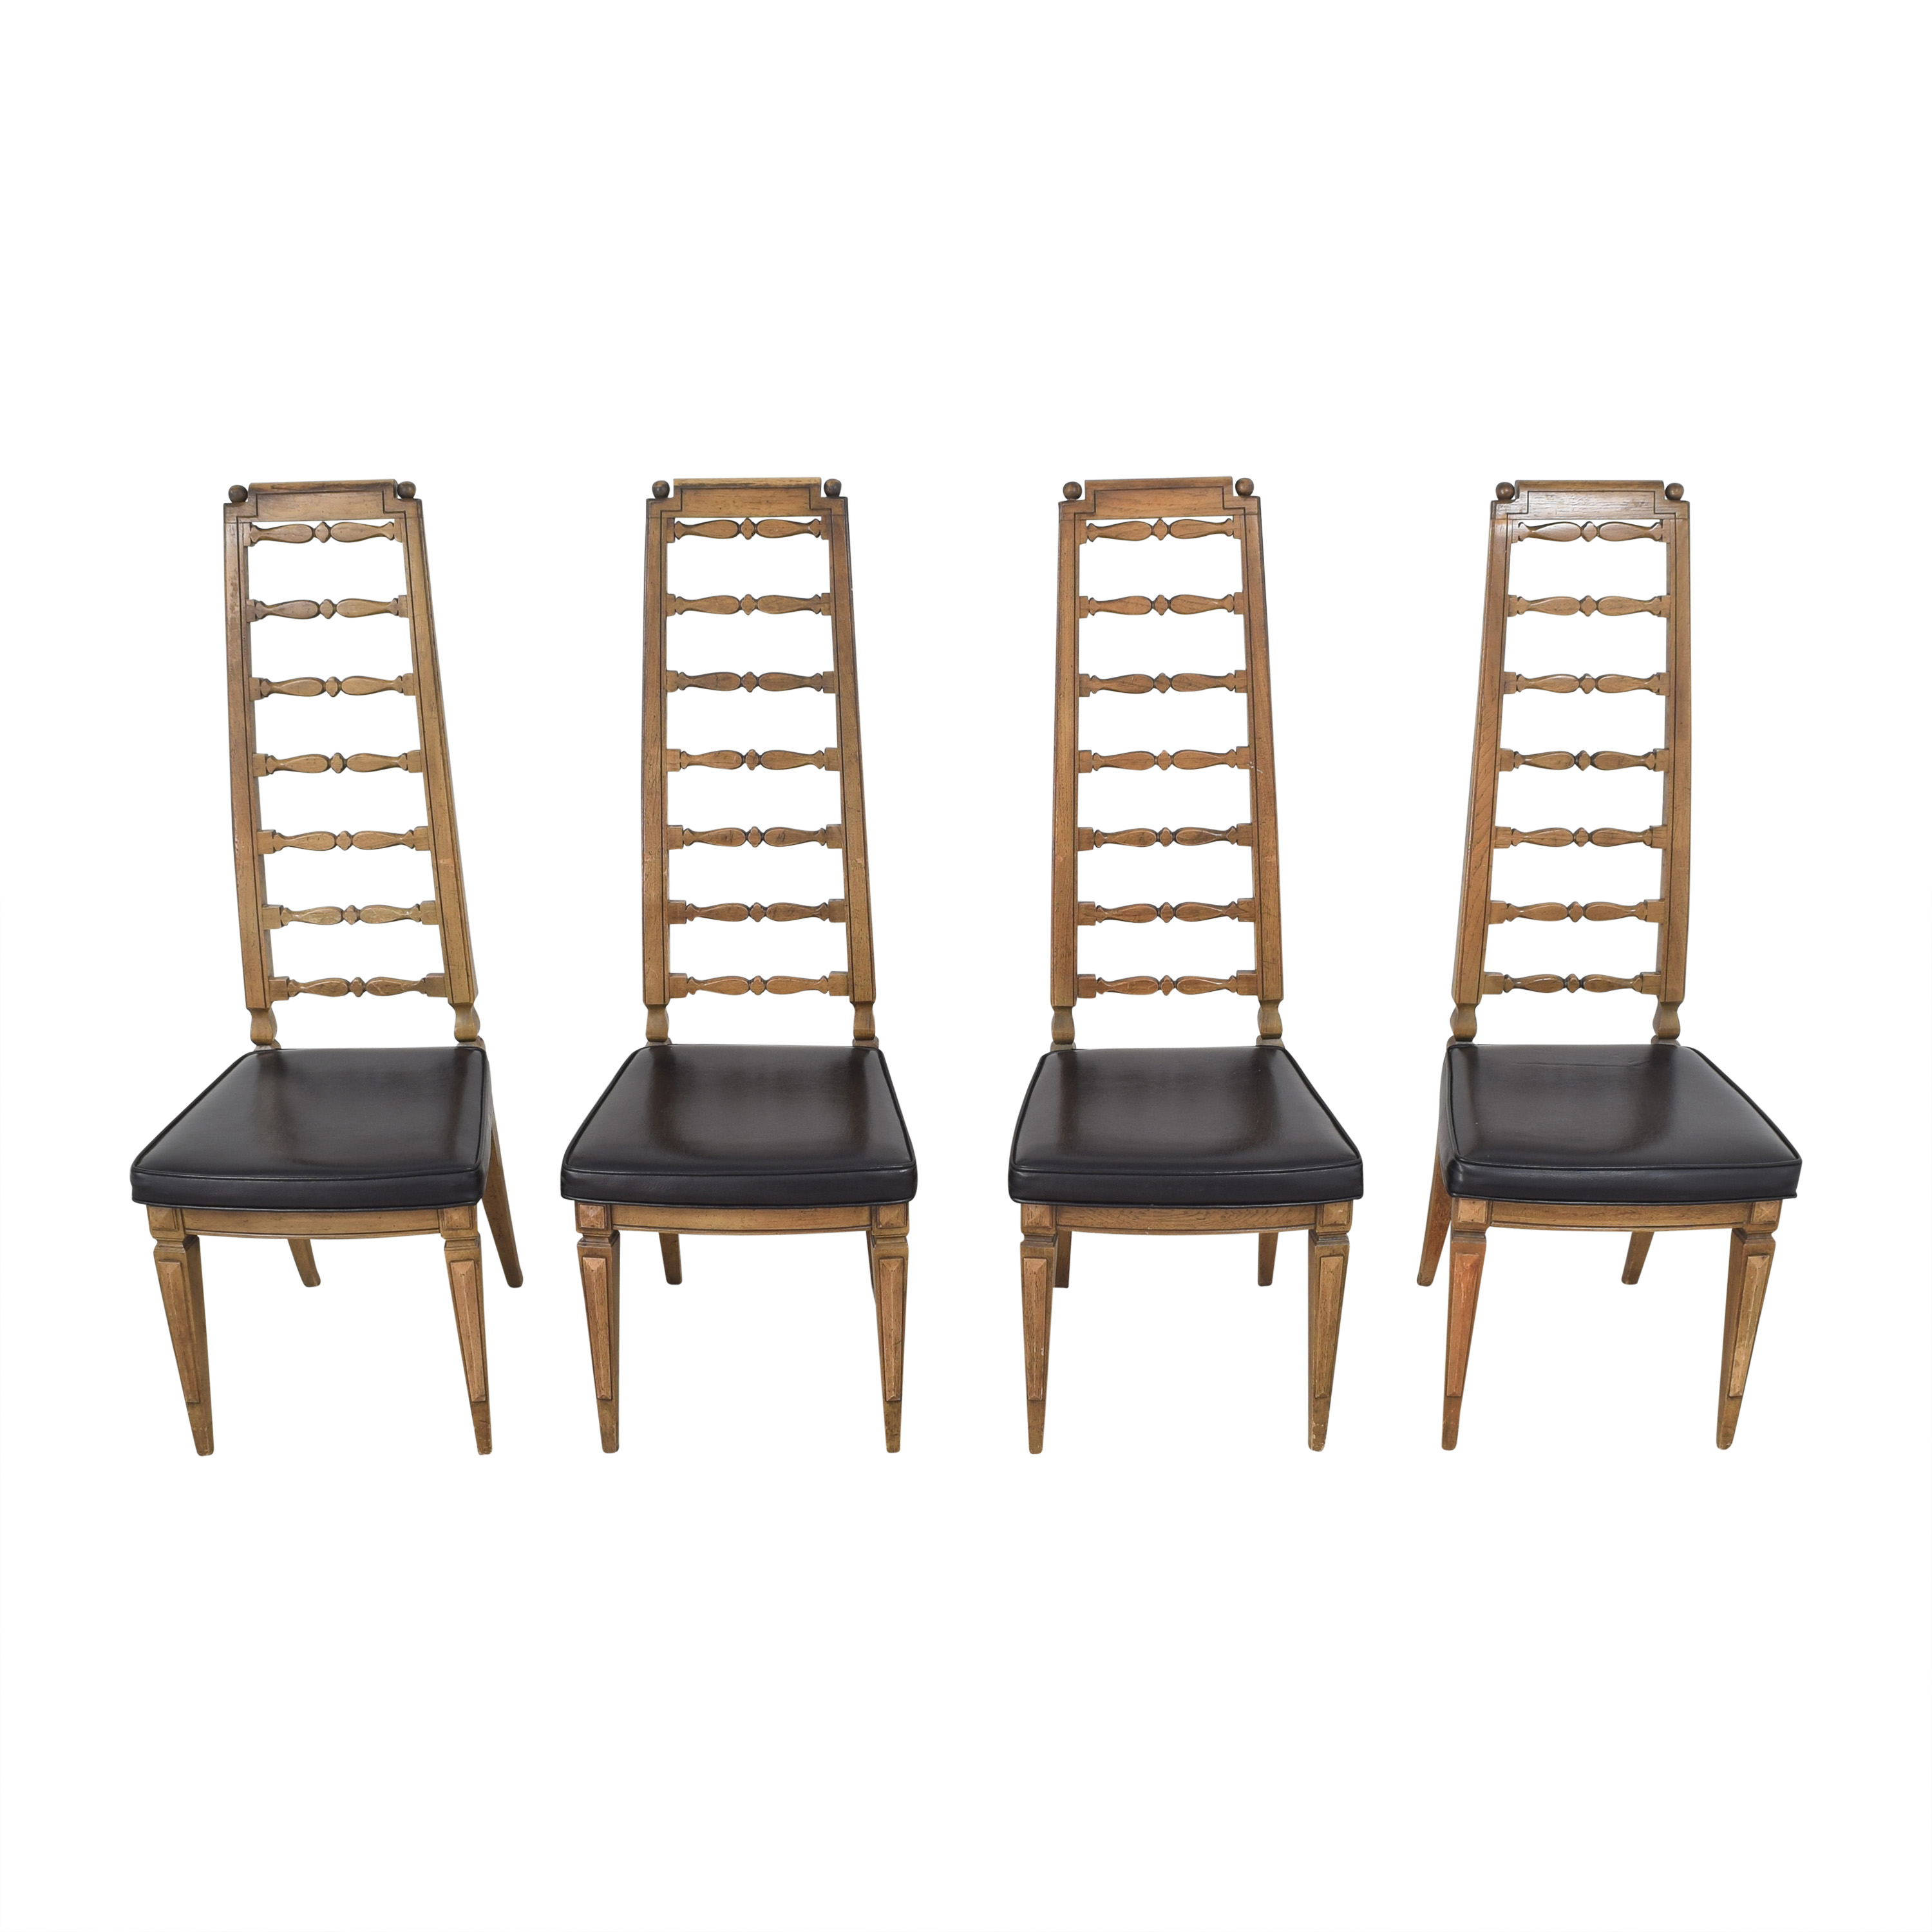 Thomasville Tall Ladder Back Dining Chairs / Dining Chairs